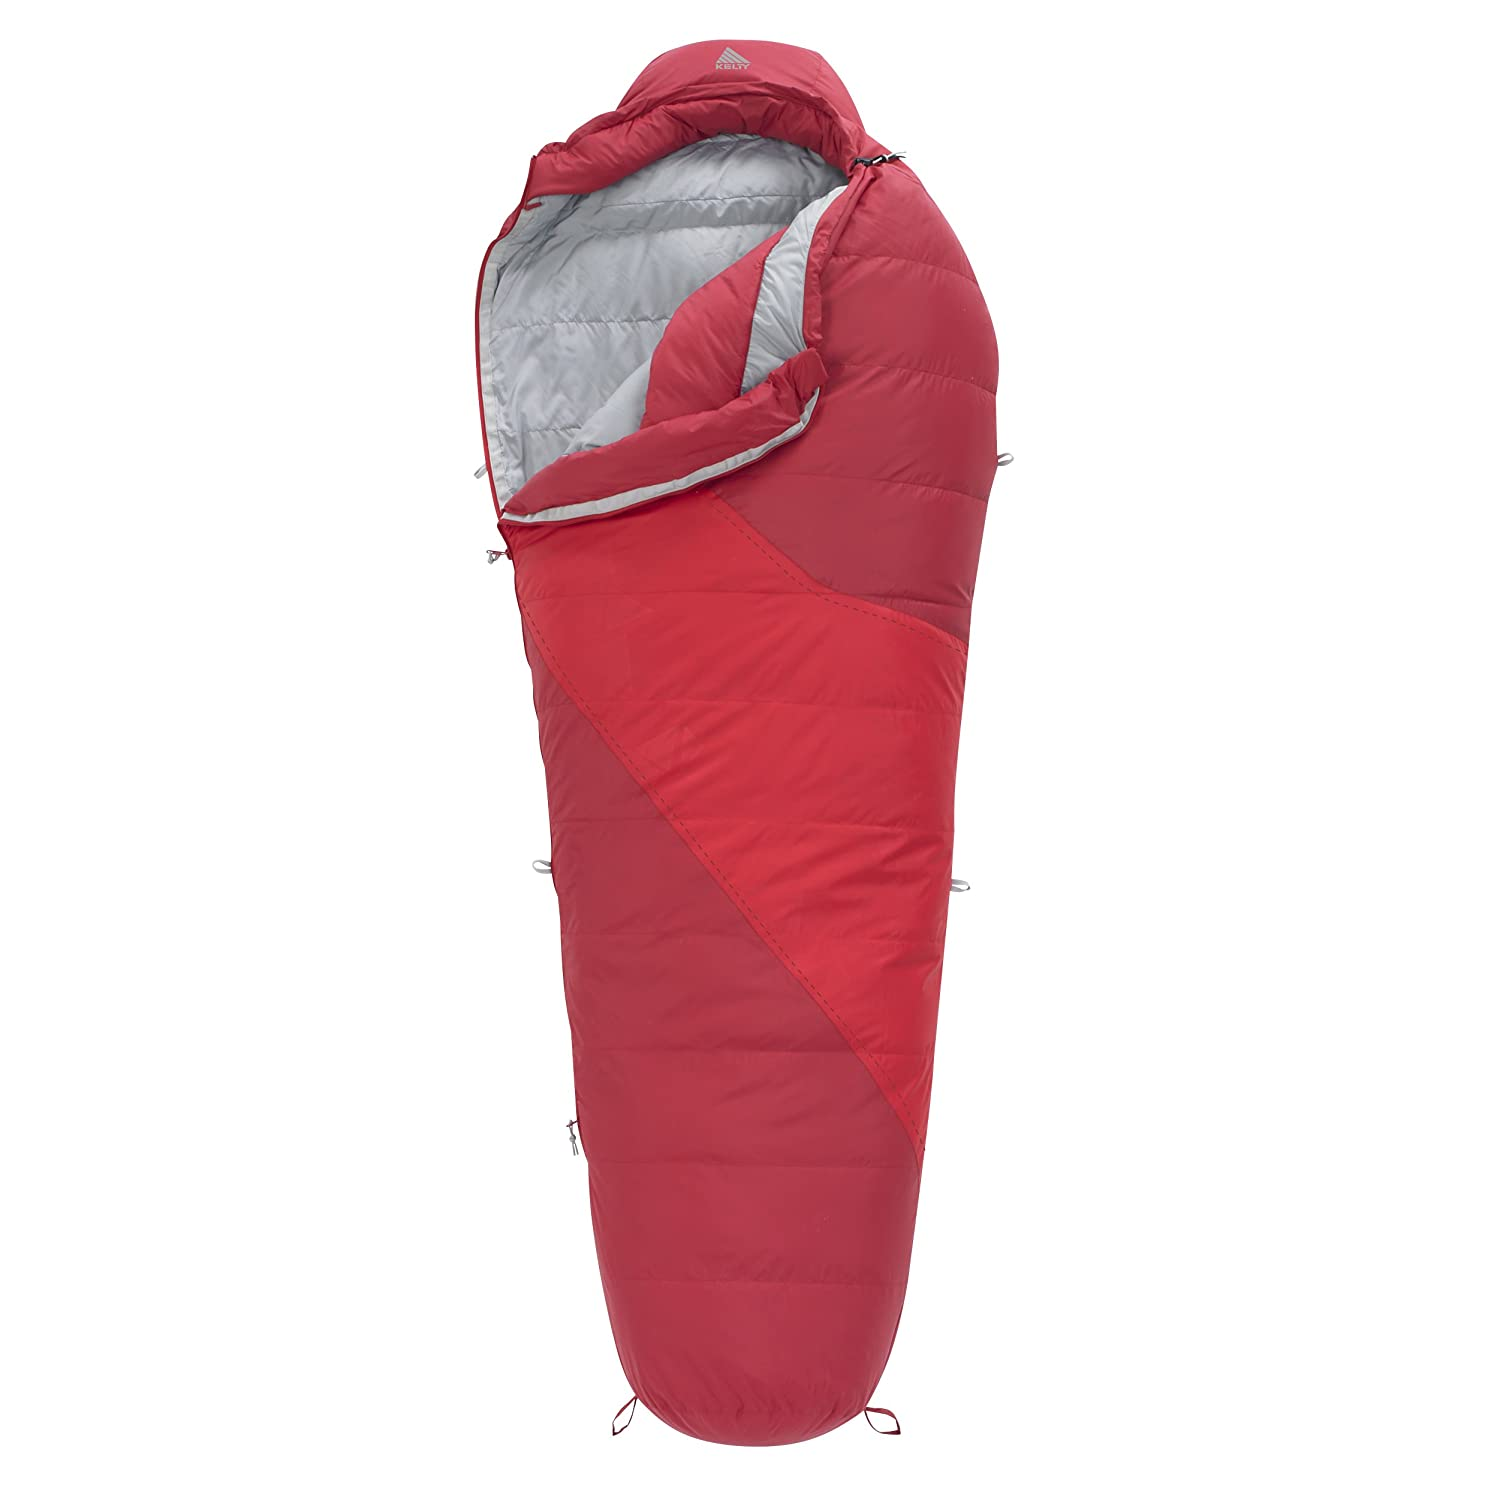 Kelty Ignite DriDown 20 Degree Sleeping Bag